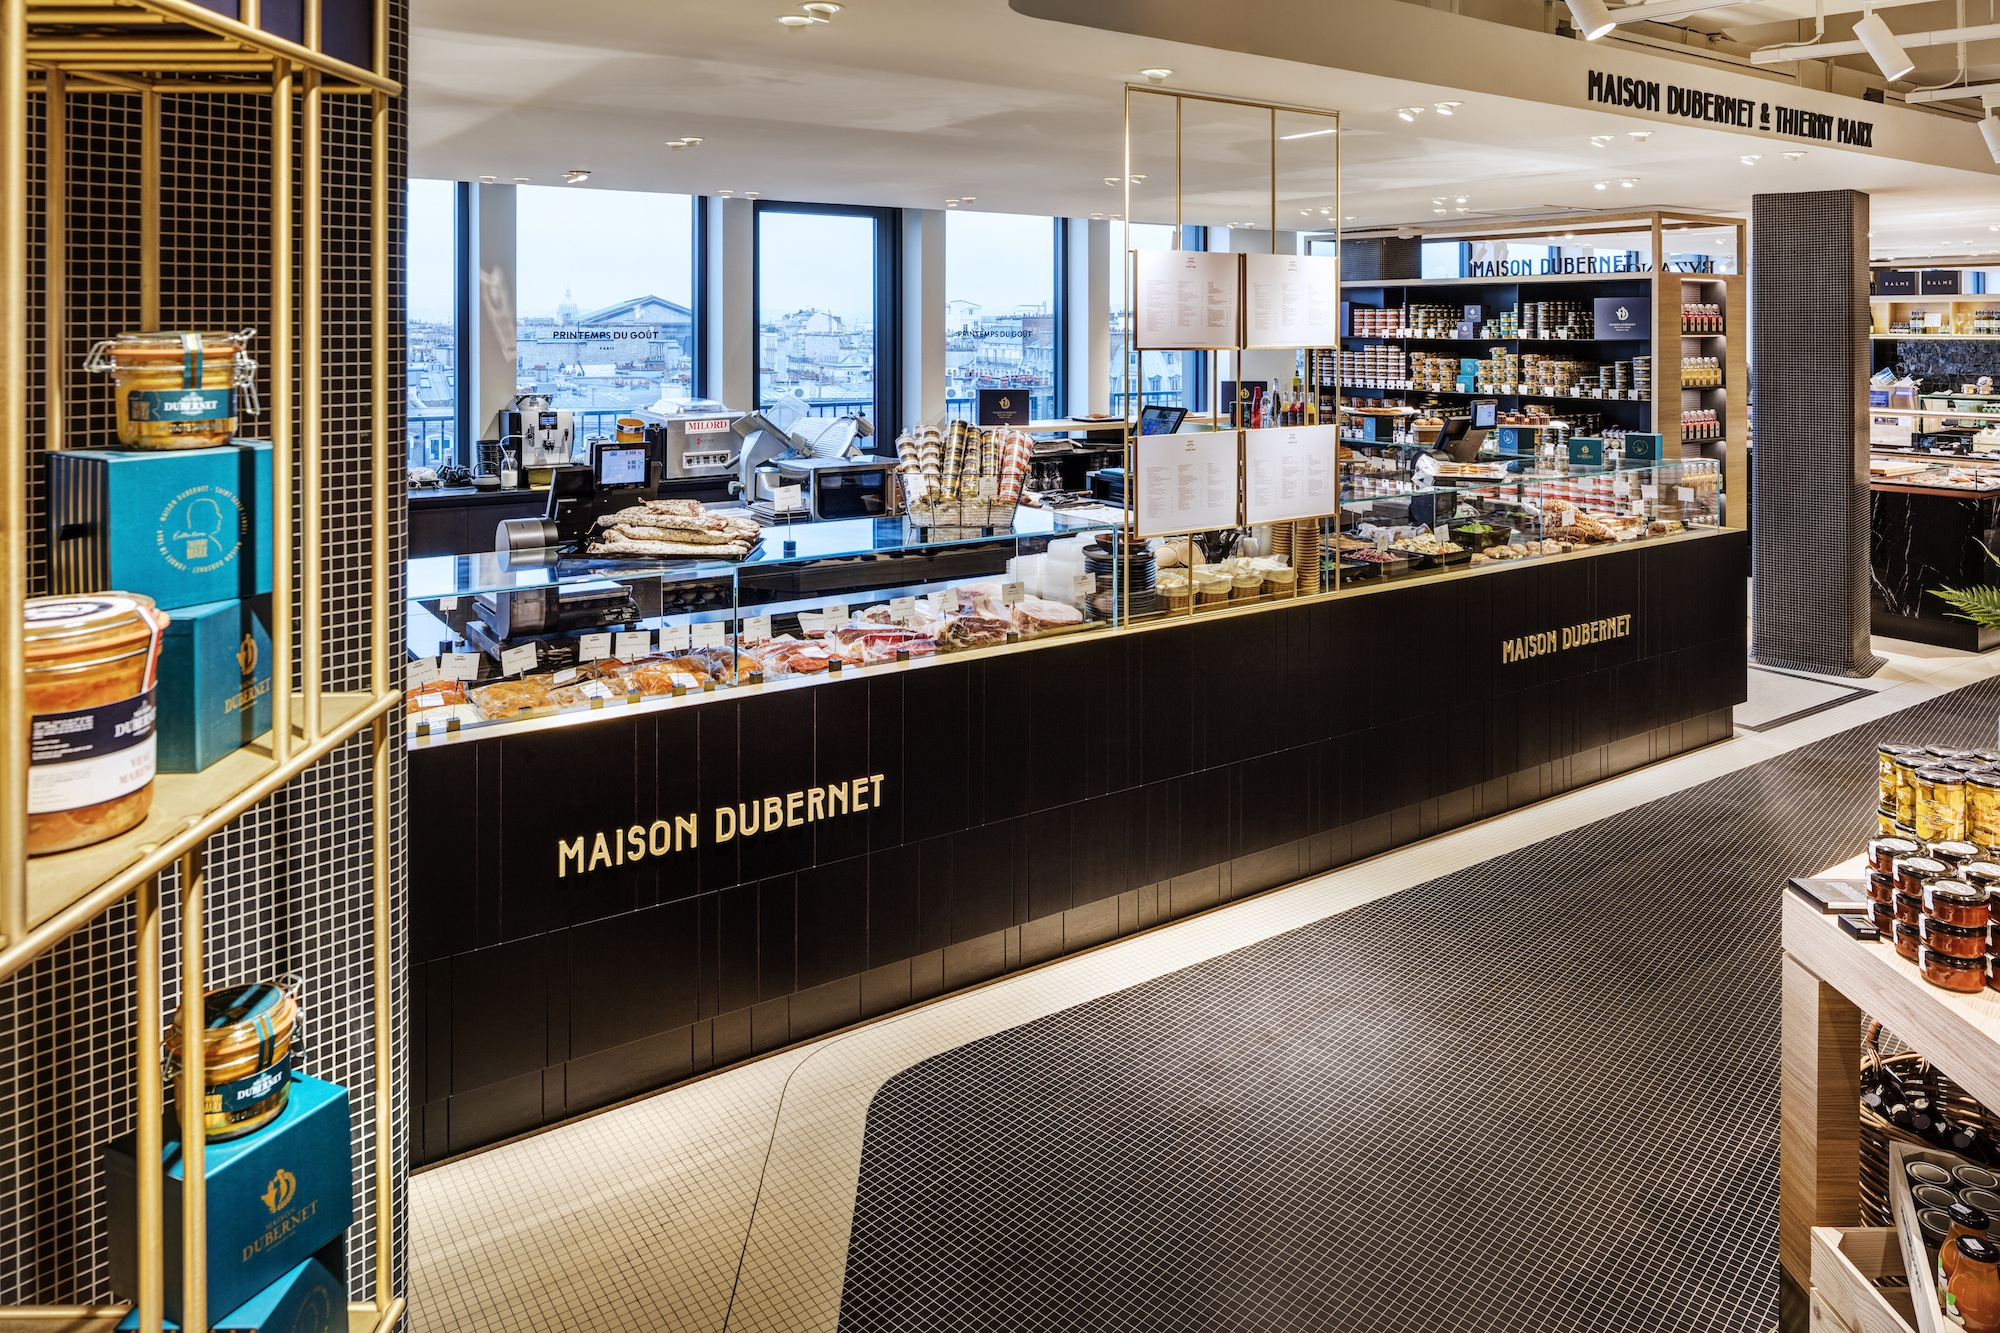 Luxury food mall Printemps du Gout counters in Paris with views of the Eiffel Tower.